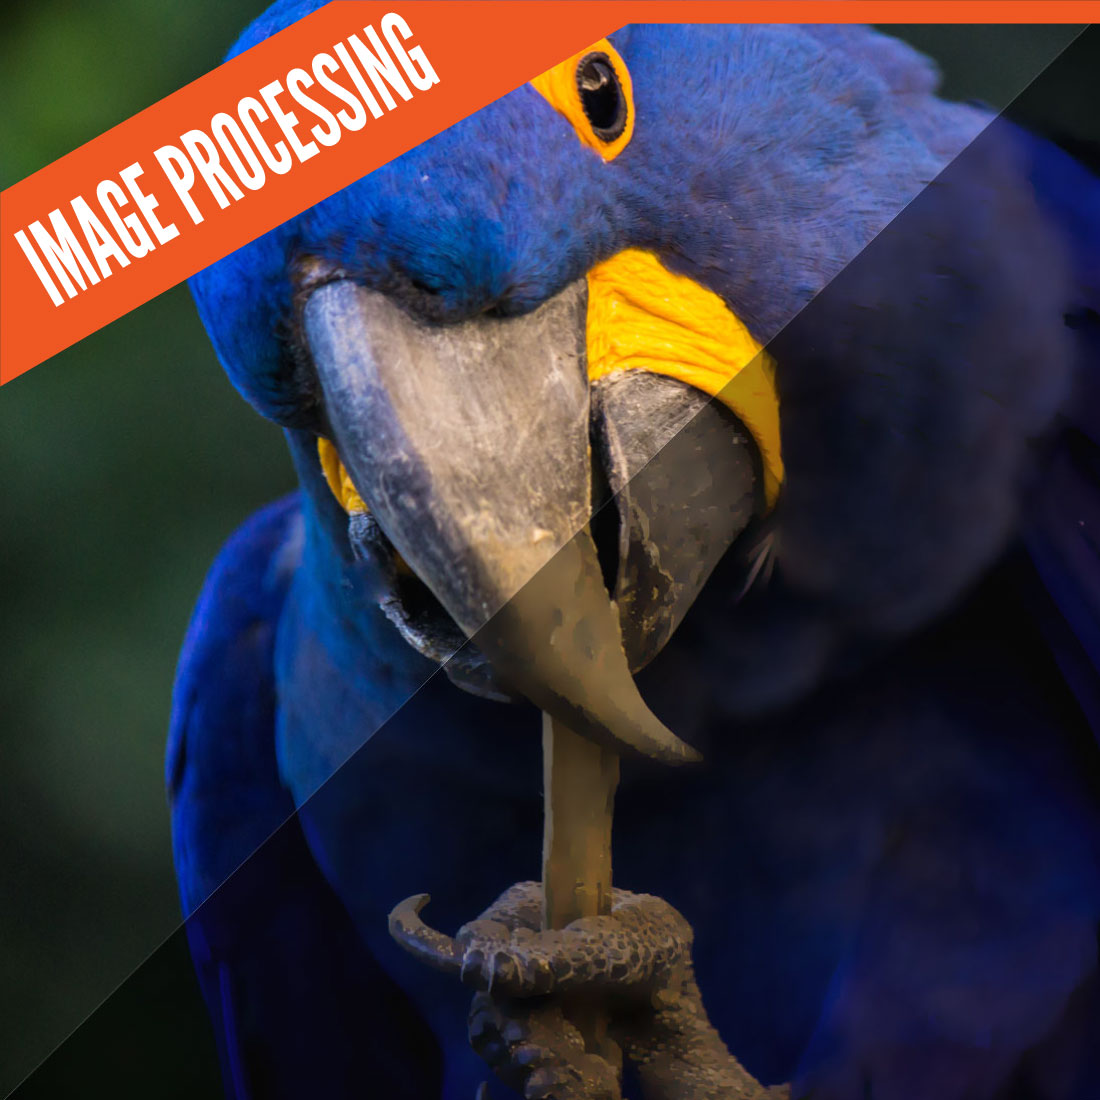 image-processing-feature